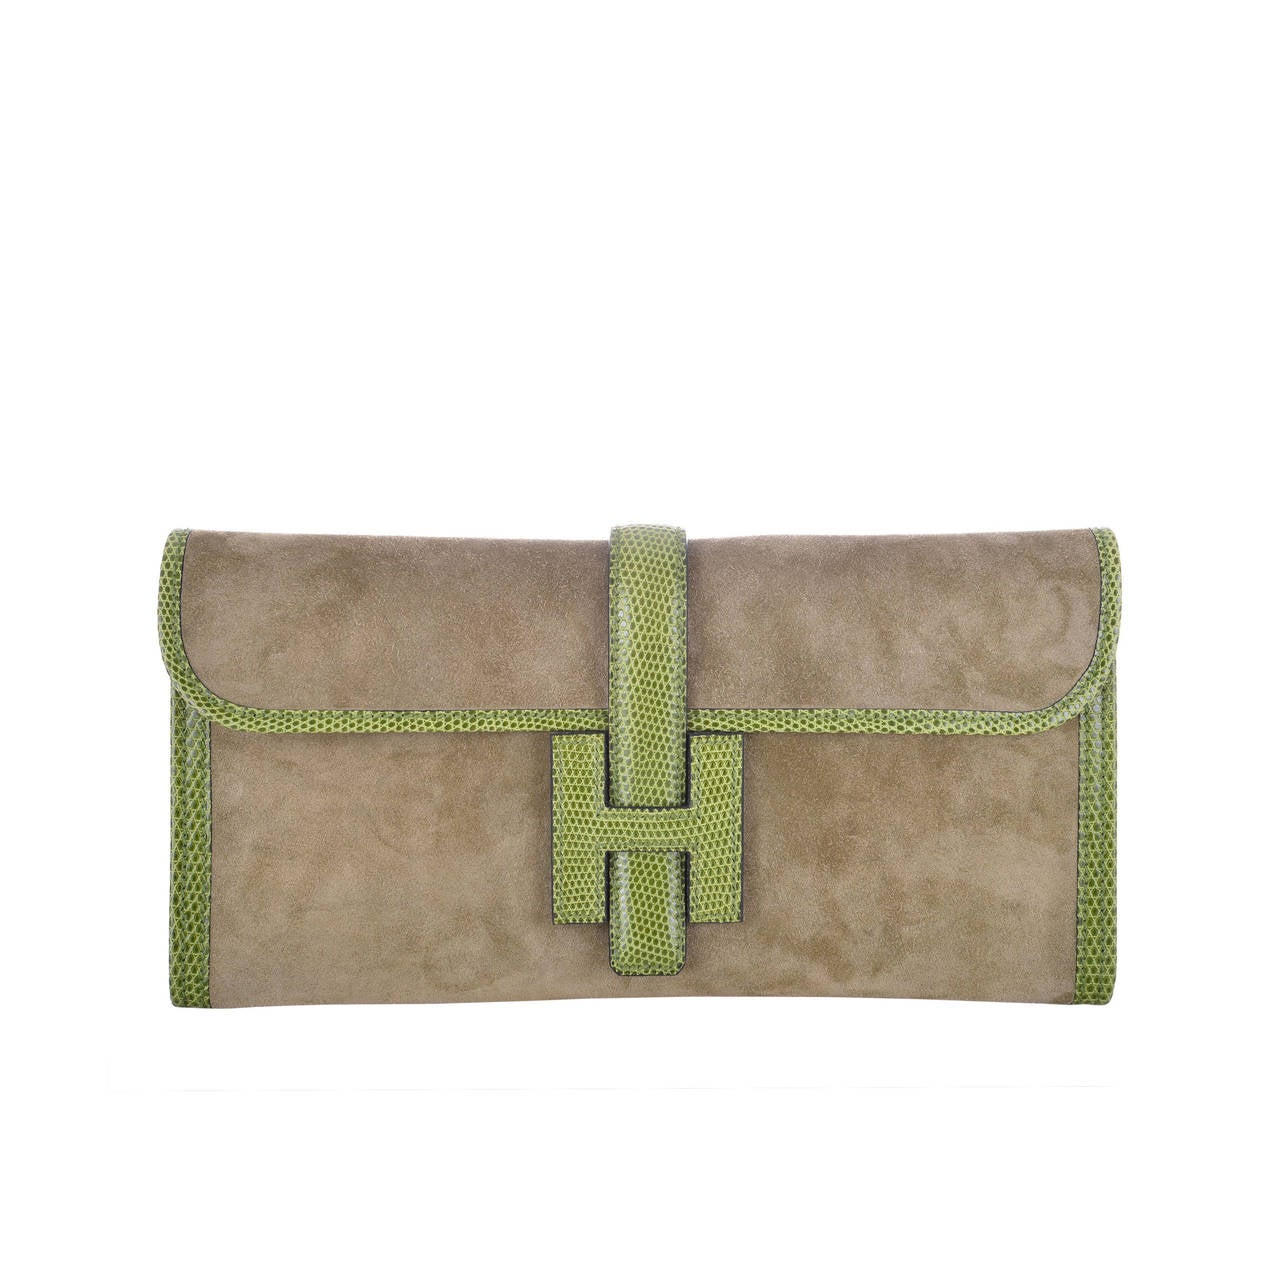 Vintage Herm¨¨s Clutches - 136 For Sale at 1stdibs - Page 2